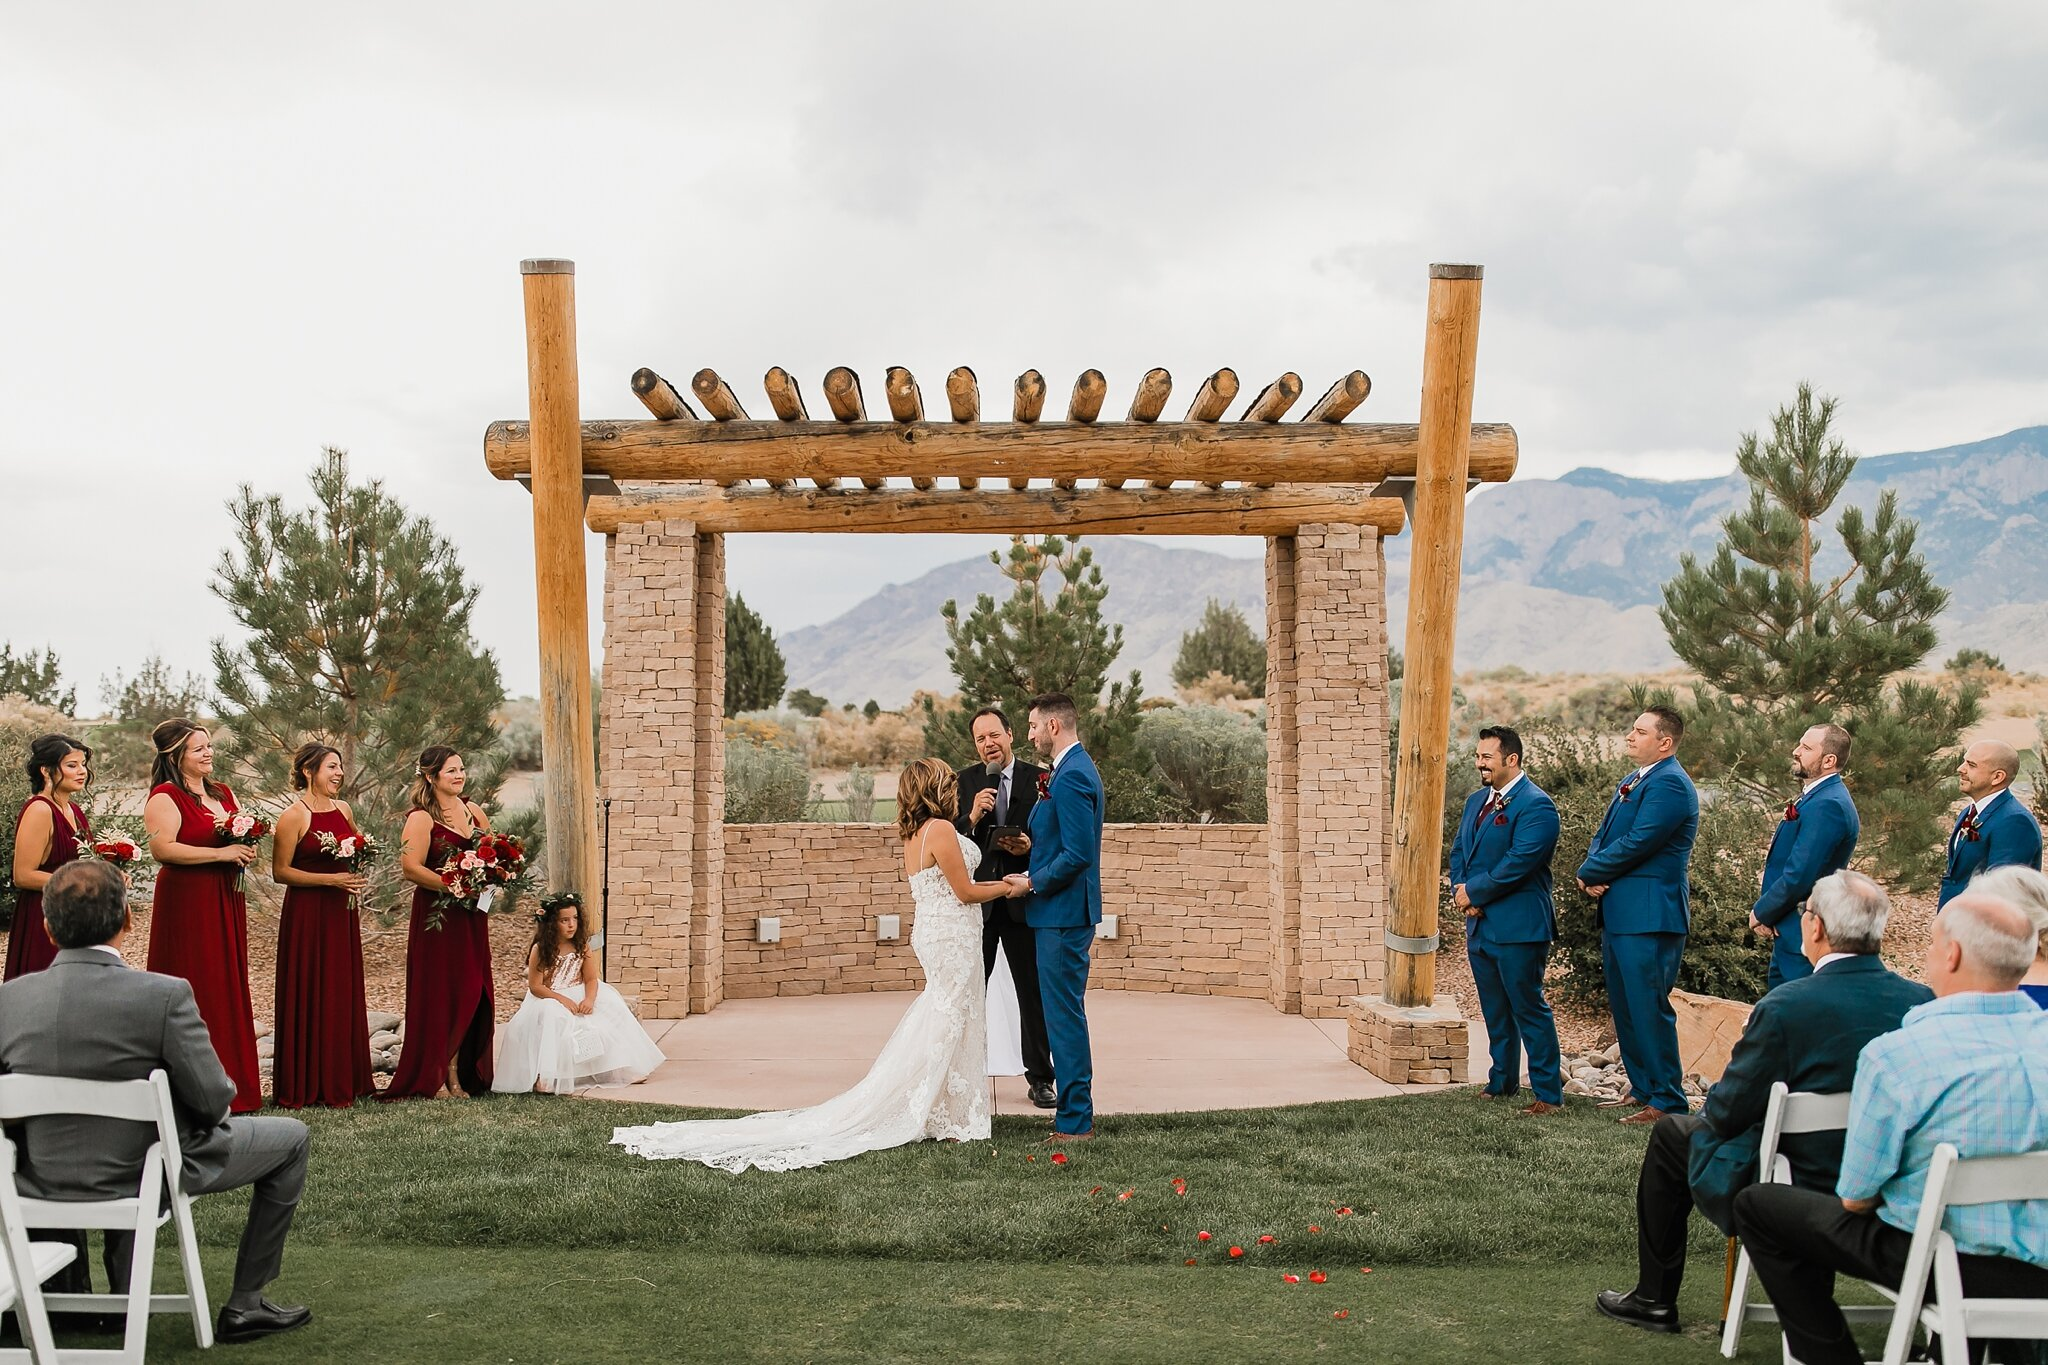 Alicia+lucia+photography+-+albuquerque+wedding+photographer+-+santa+fe+wedding+photography+-+new+mexico+wedding+photographer+-+new+mexico+wedding+-+albuquerque+wedding+-+sandia+wedding+-+sandia+event+center+wedding_0046.jpg